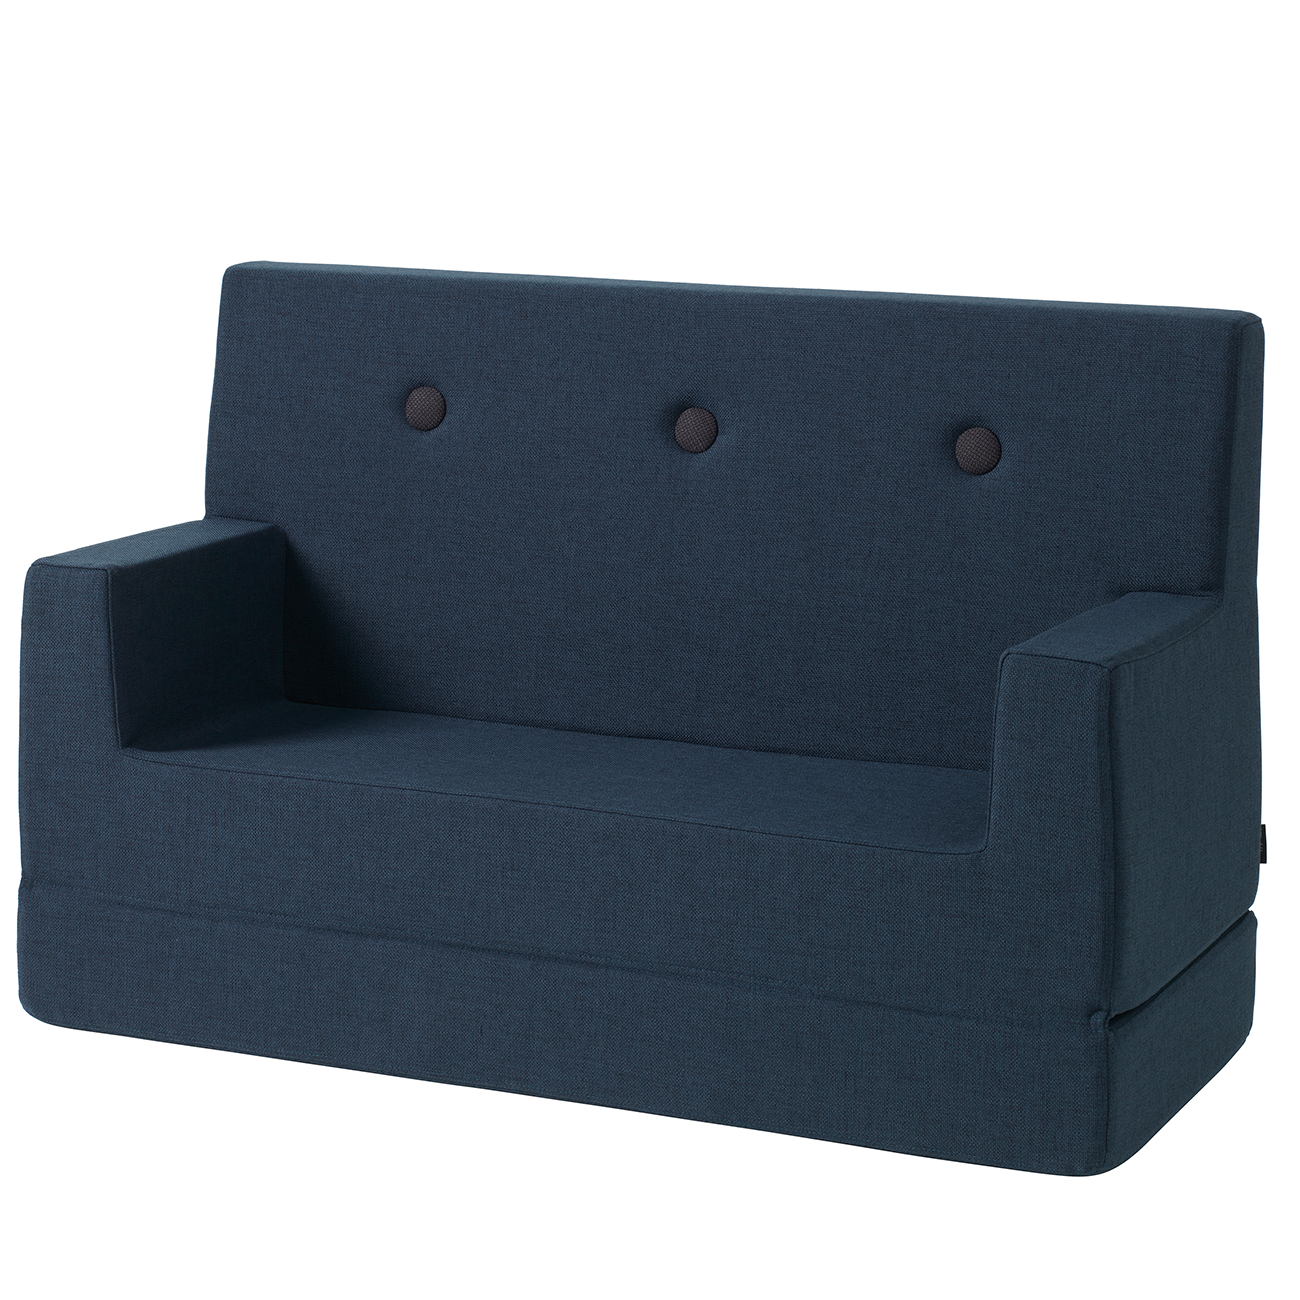 KK Kids Sofa Dark Blue w. Black Buttons